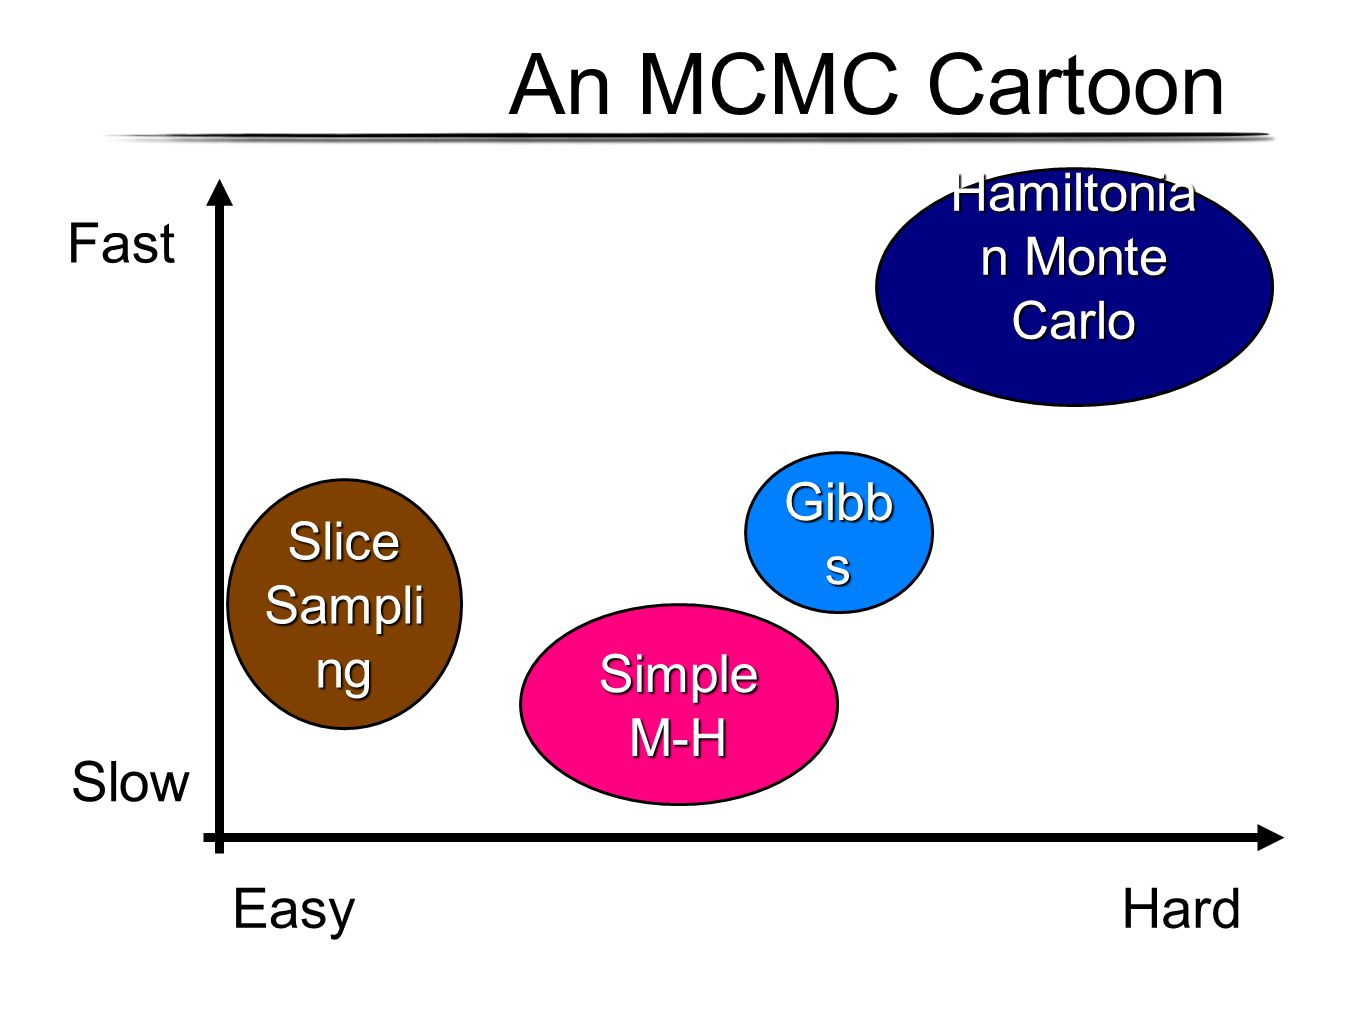 An MCMC Cartoon Fast Slow EasyHard Gibb s Simple M-H Slice Sampli ng Hamiltonia n Monte Carlo